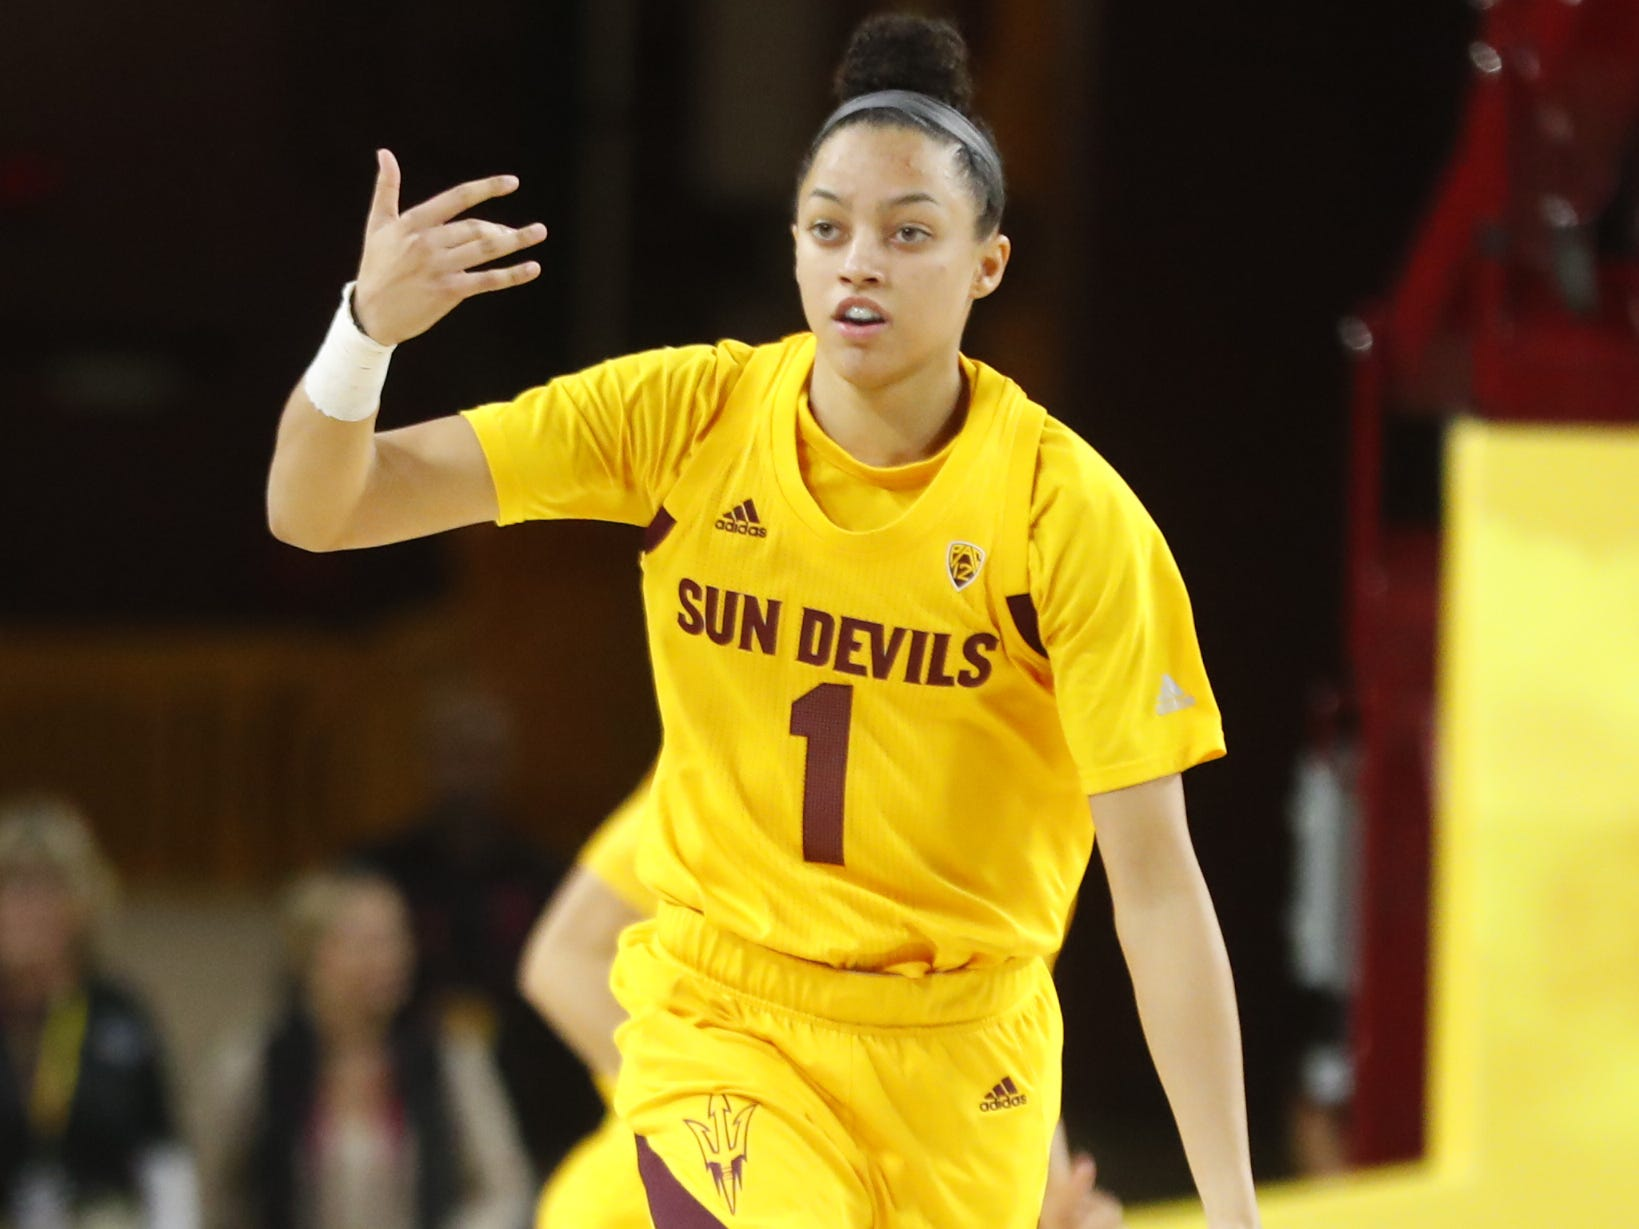 ASU's Reili Richardson (1) dribbles up the court against Louisiana Tech during the first half at Wells Fargo Arena in Tempe, Ariz. on November 30, 2018.